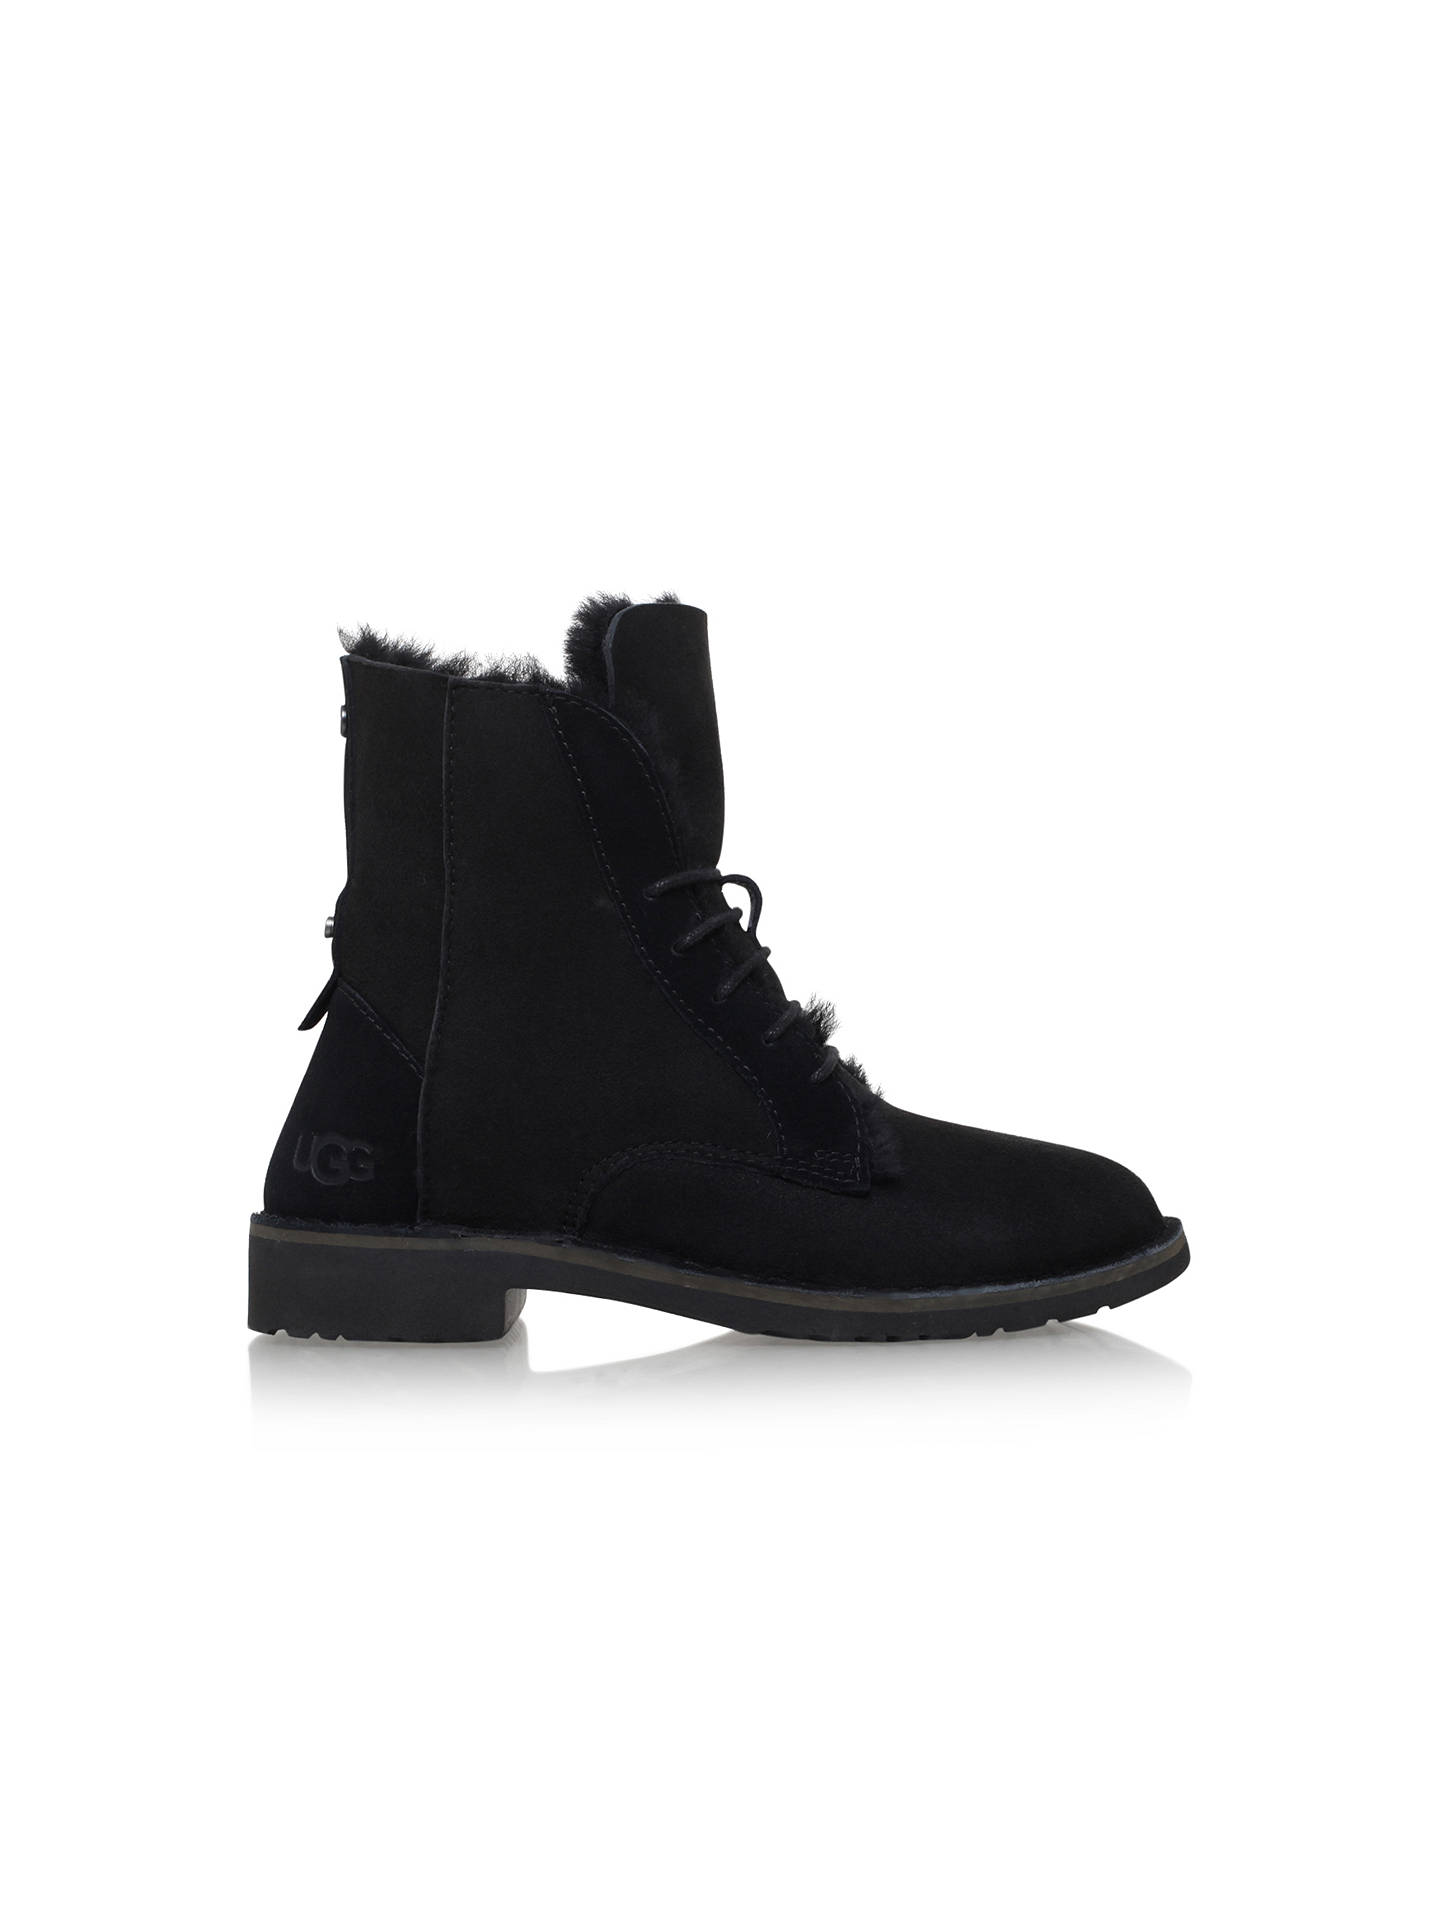 291ae27eee2 UGG Quincy Lace Up Ankle Boots at John Lewis & Partners